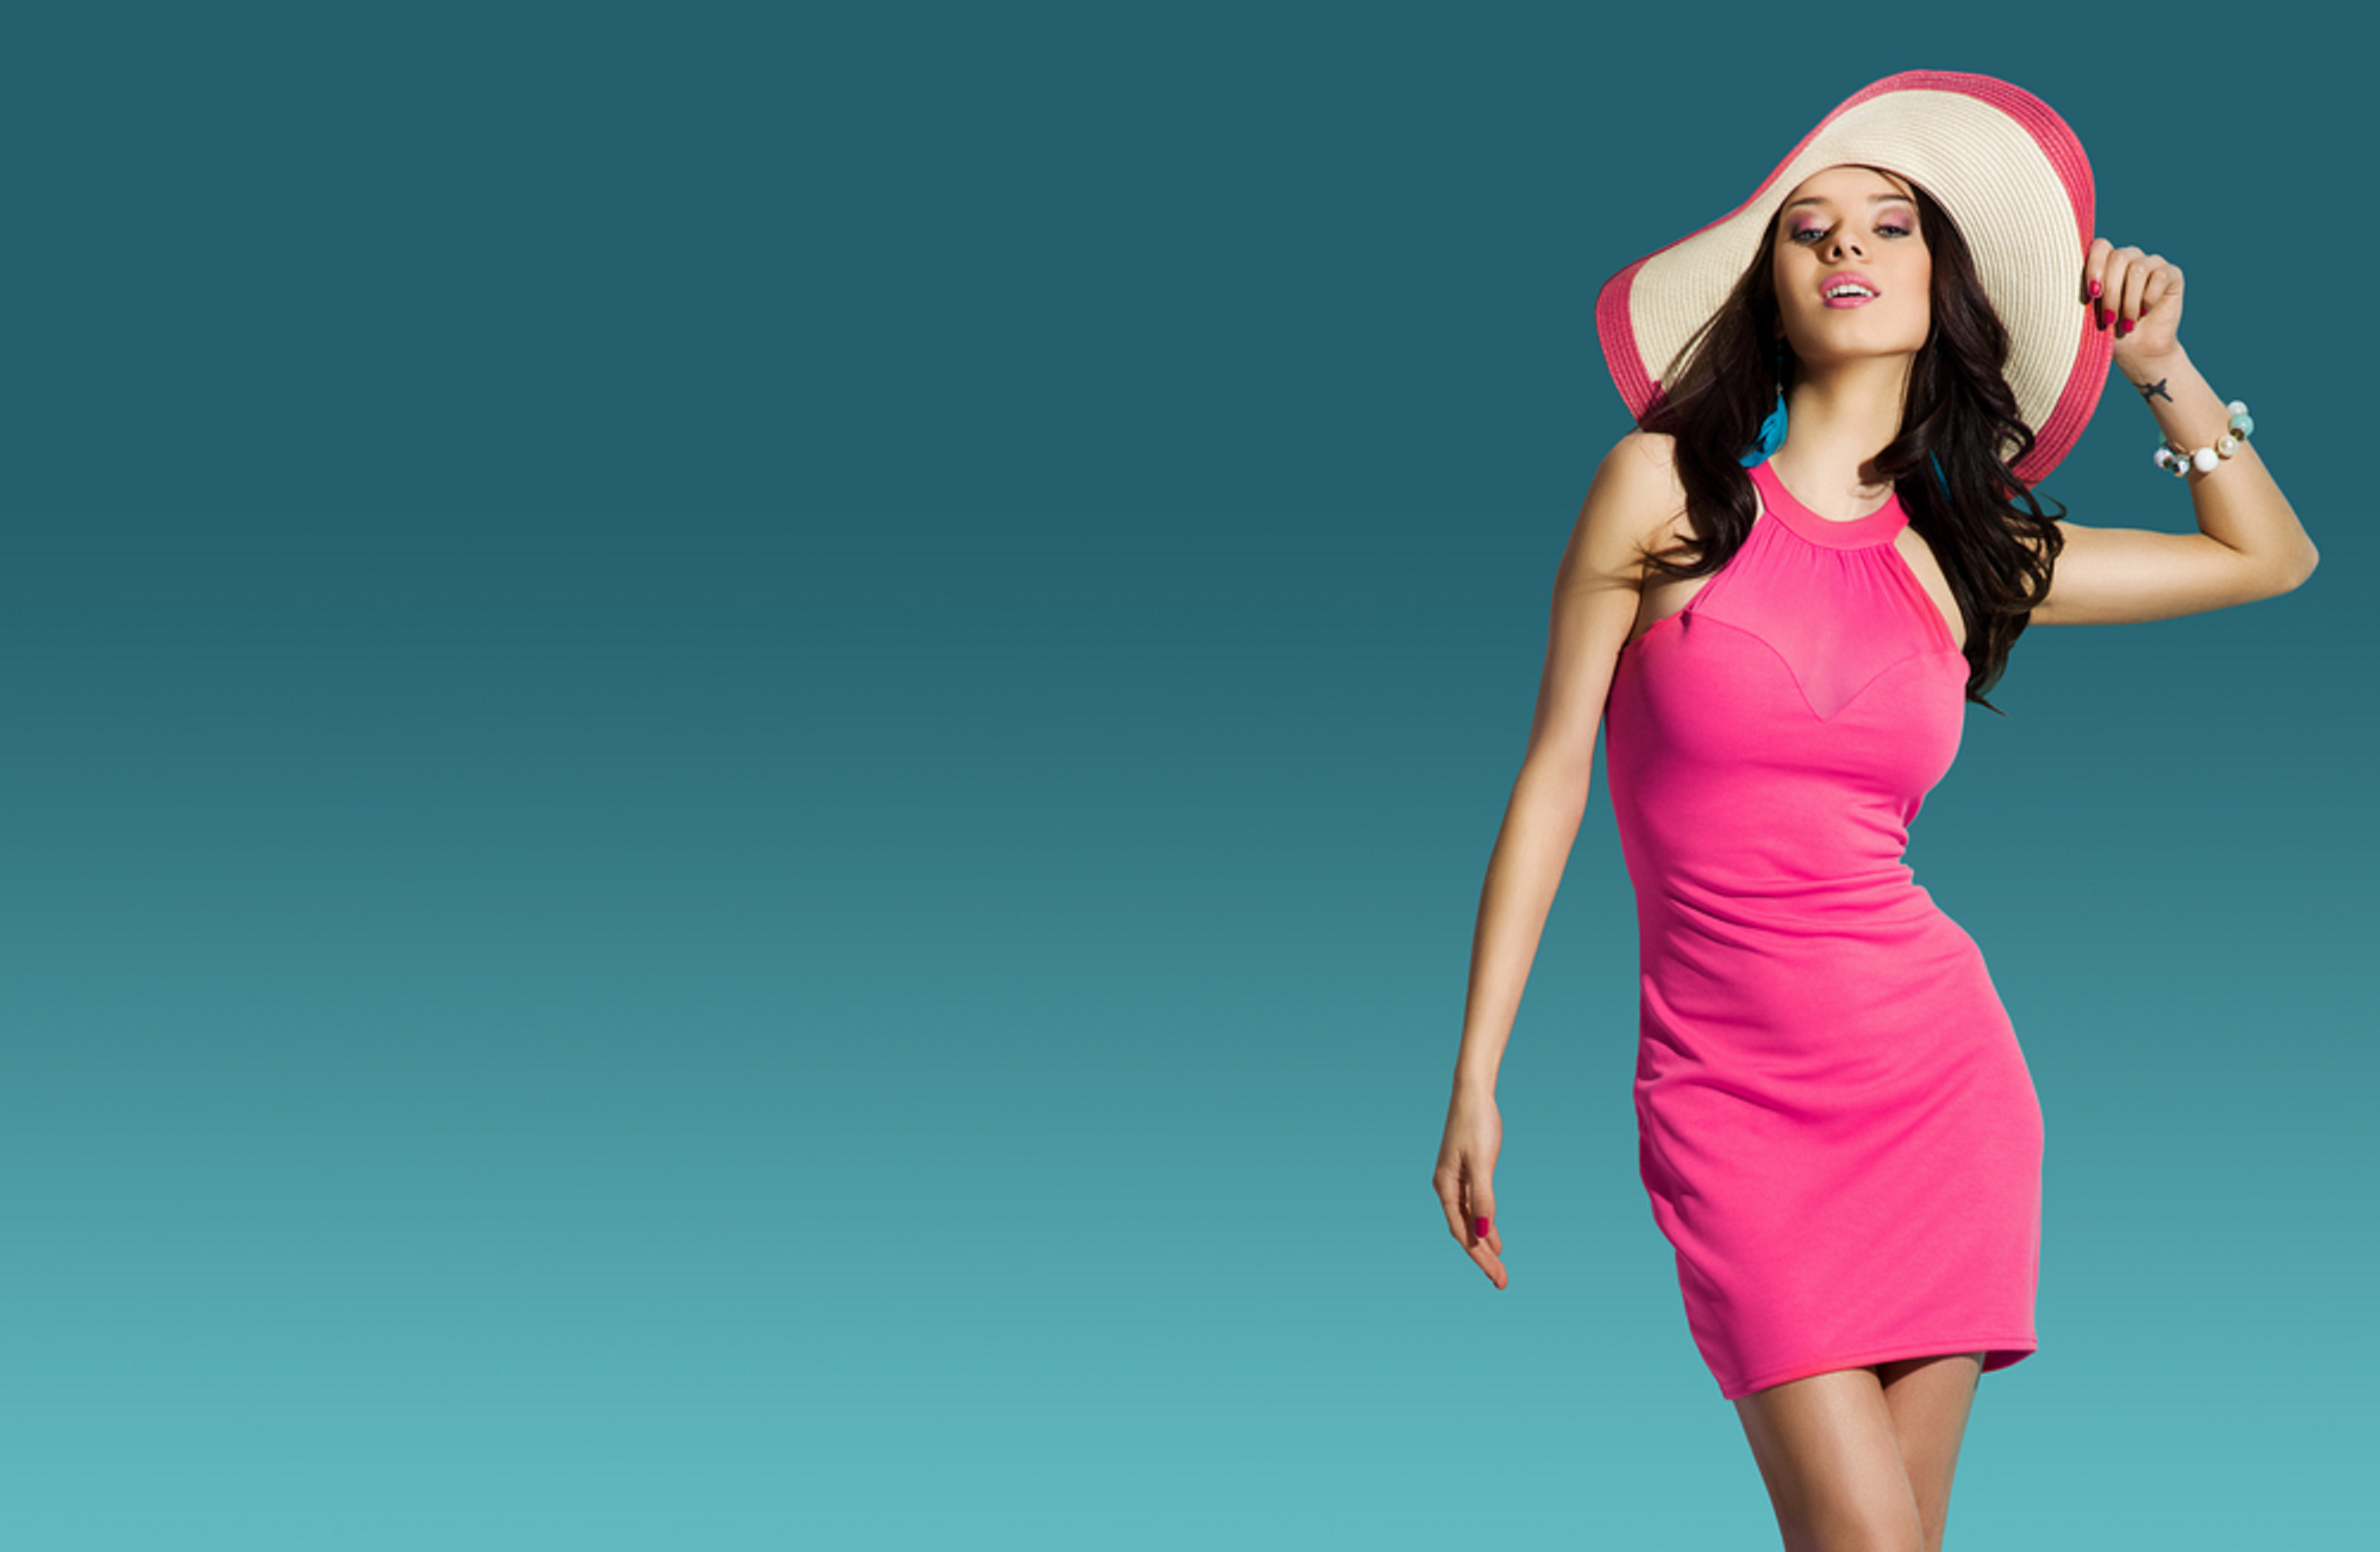 Perfect Shape Girl Model Girl Fashion Girl With Hat